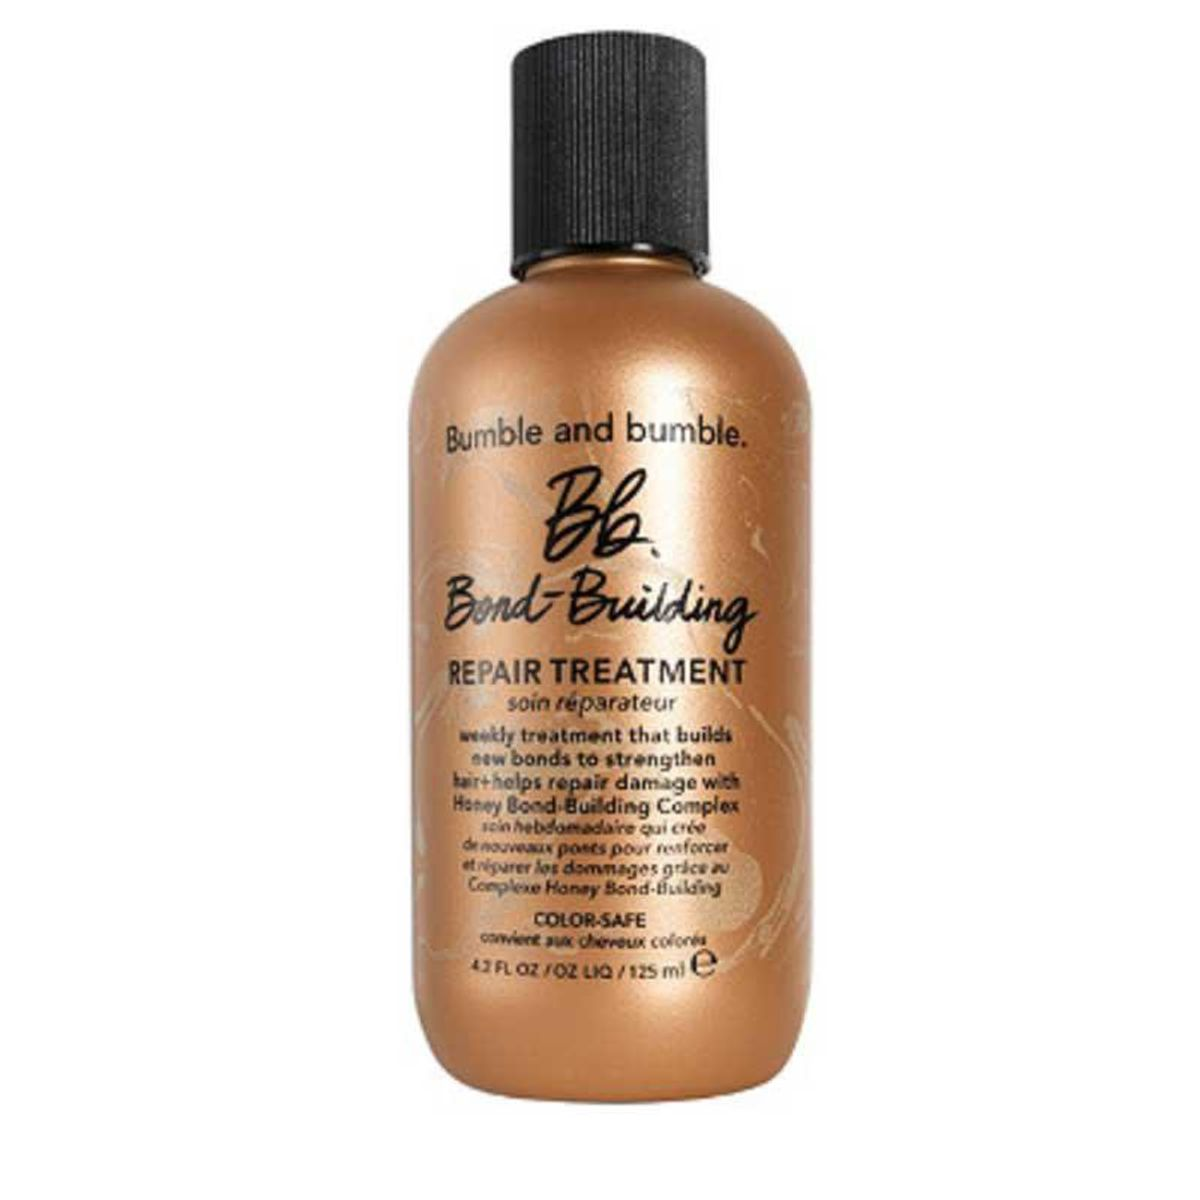 bumble and bumble bb bond building repair treatment